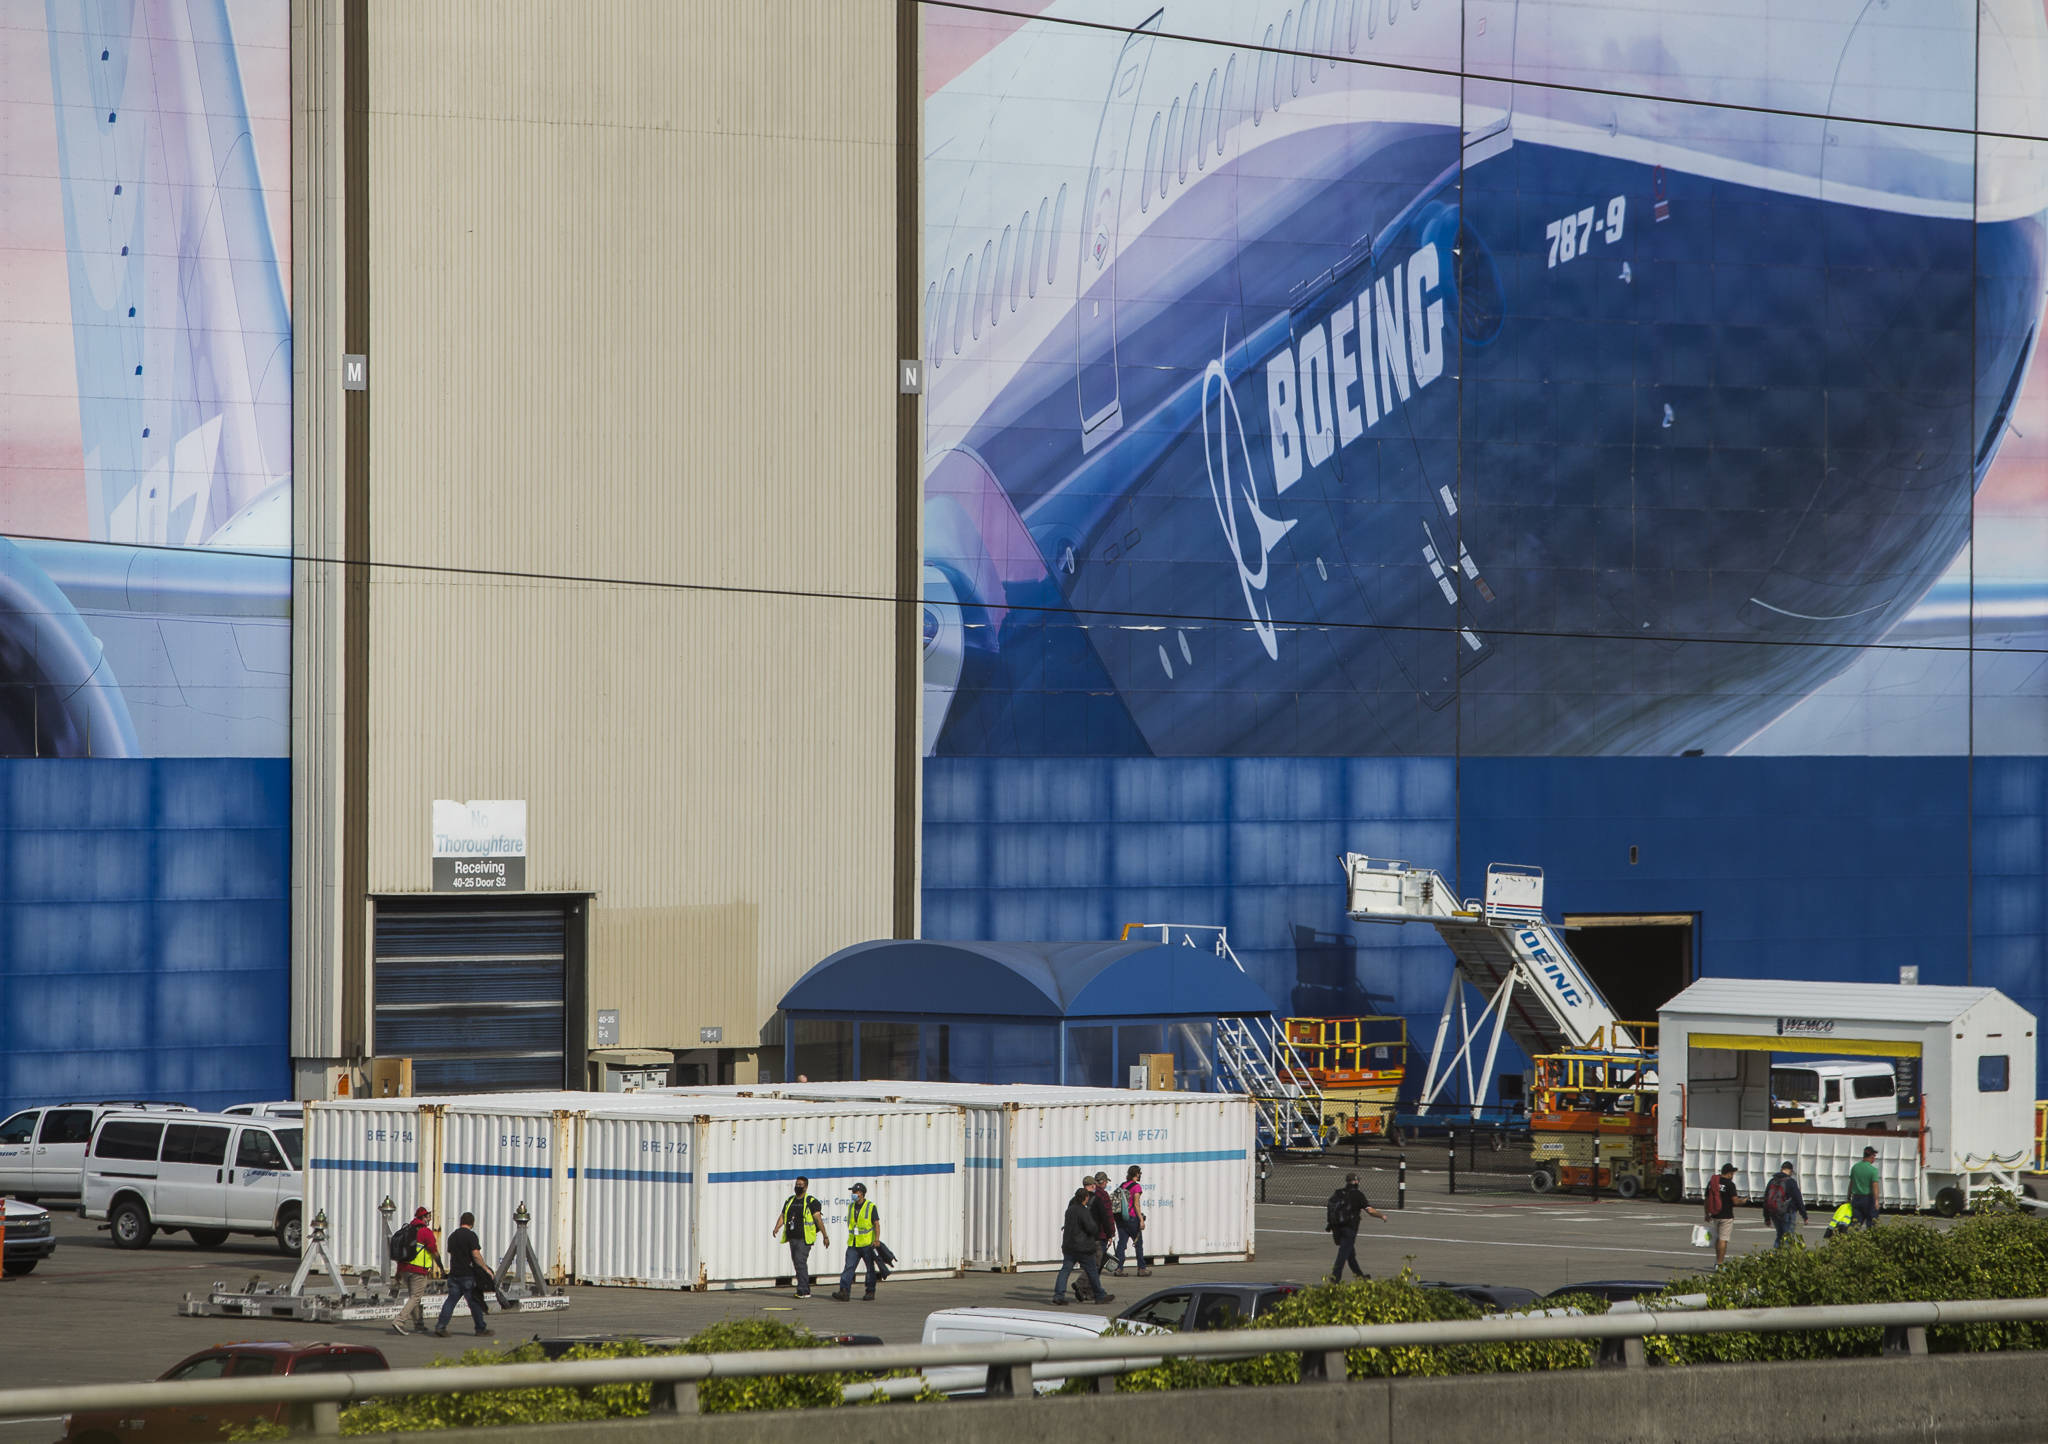 Boeing workers walk to and from their cars during a shift change on Oct. 1 in Everett. (Olivia Vanni / The Herald)